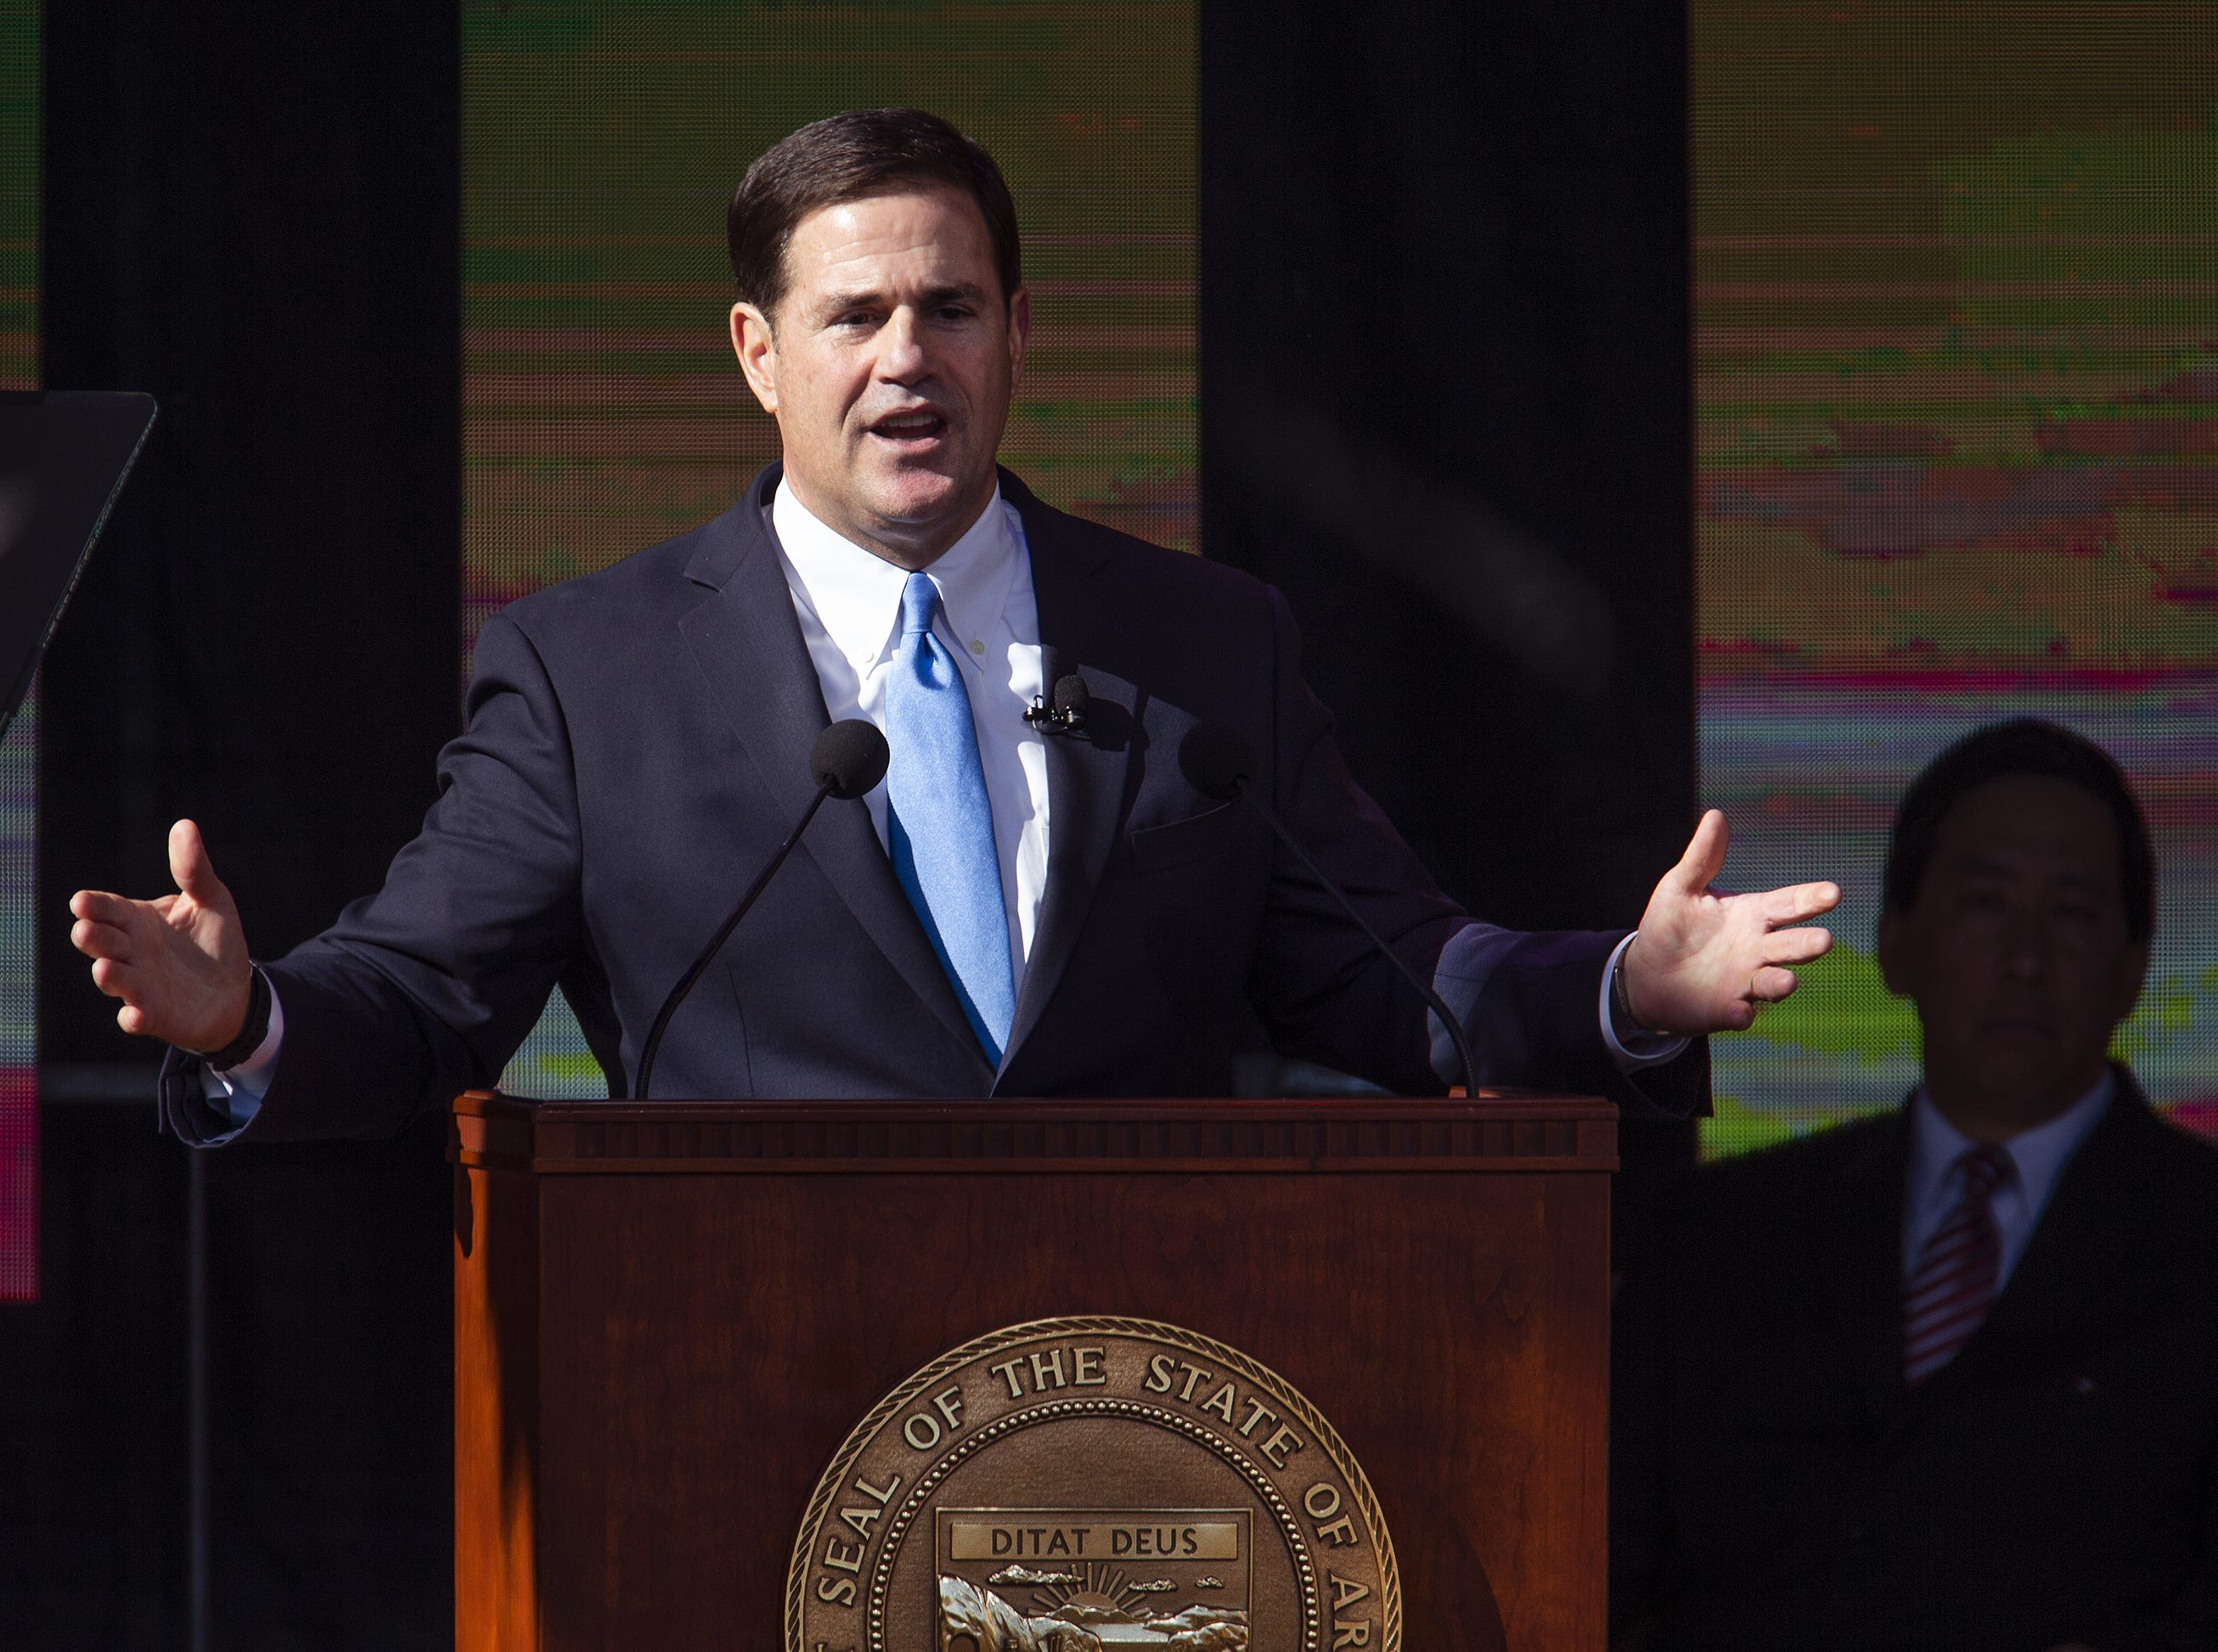 Gov. Doug Ducey speaks after being sworn in by Arizona Supreme Court Chief Justice Scott Bales at the Arizona Capitol in Phoenix at the 2019 State of Arizona Inauguration ceremony on Jan. 7, 2019. Gov. Ducey , Secretary of State Katie Hobbs, Attorney General Mark Brnovich, State Treasurer Kimberly Yee, Superintendent of Public Instruction Kathy Hoffman and State Mine Inspector Joe Hart were all sworn in to office during the ceremony.